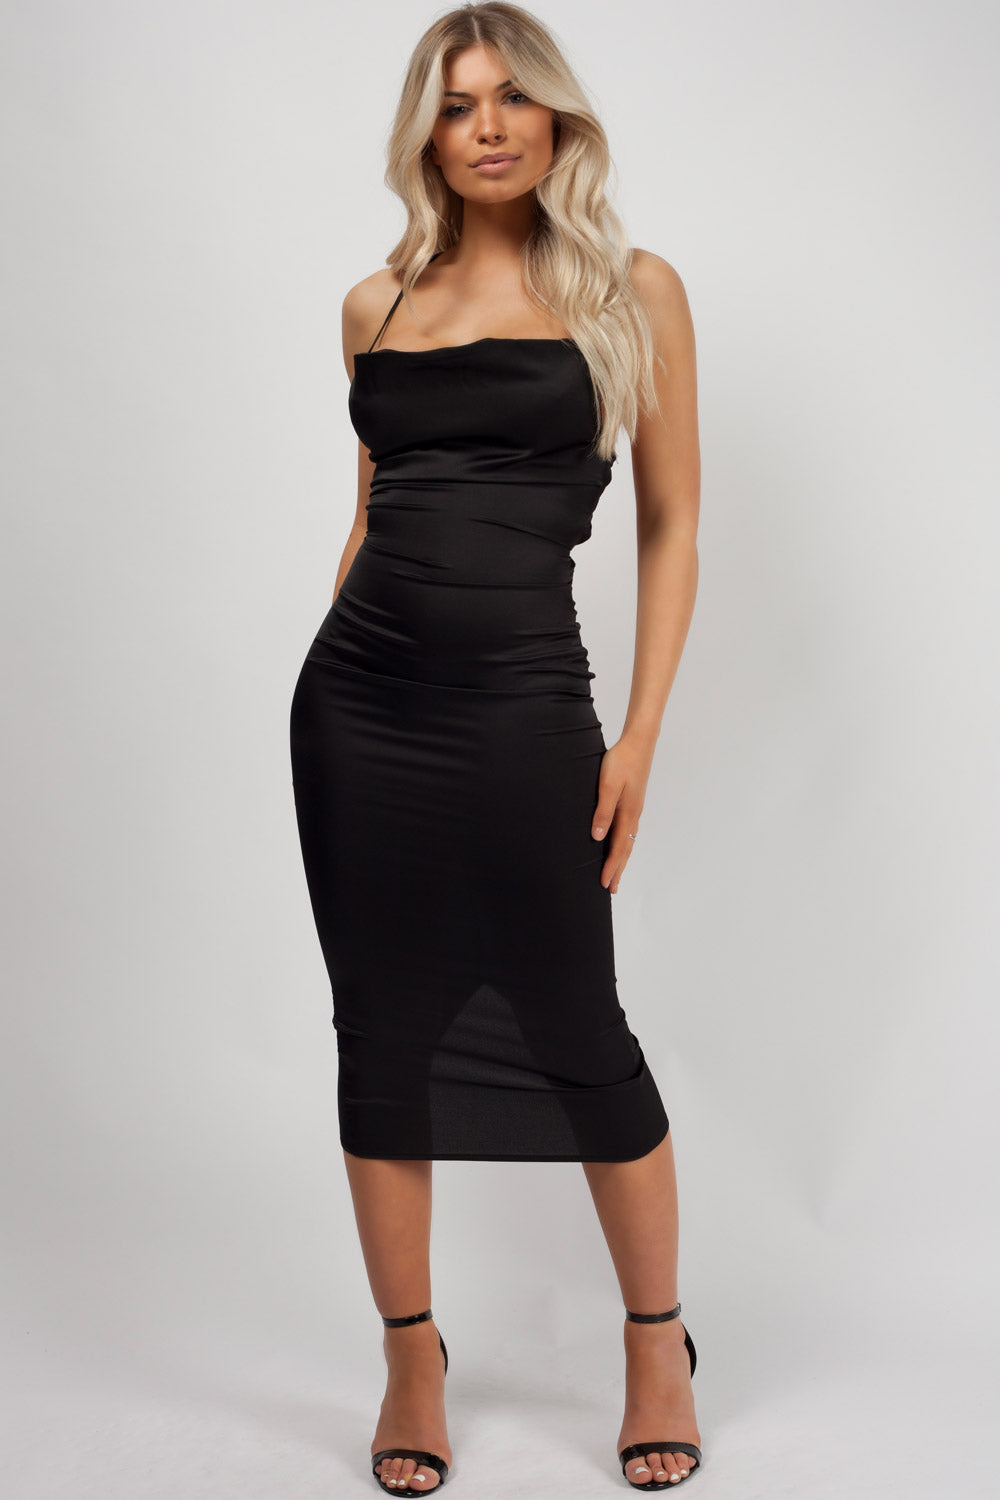 black satin midi dress uk